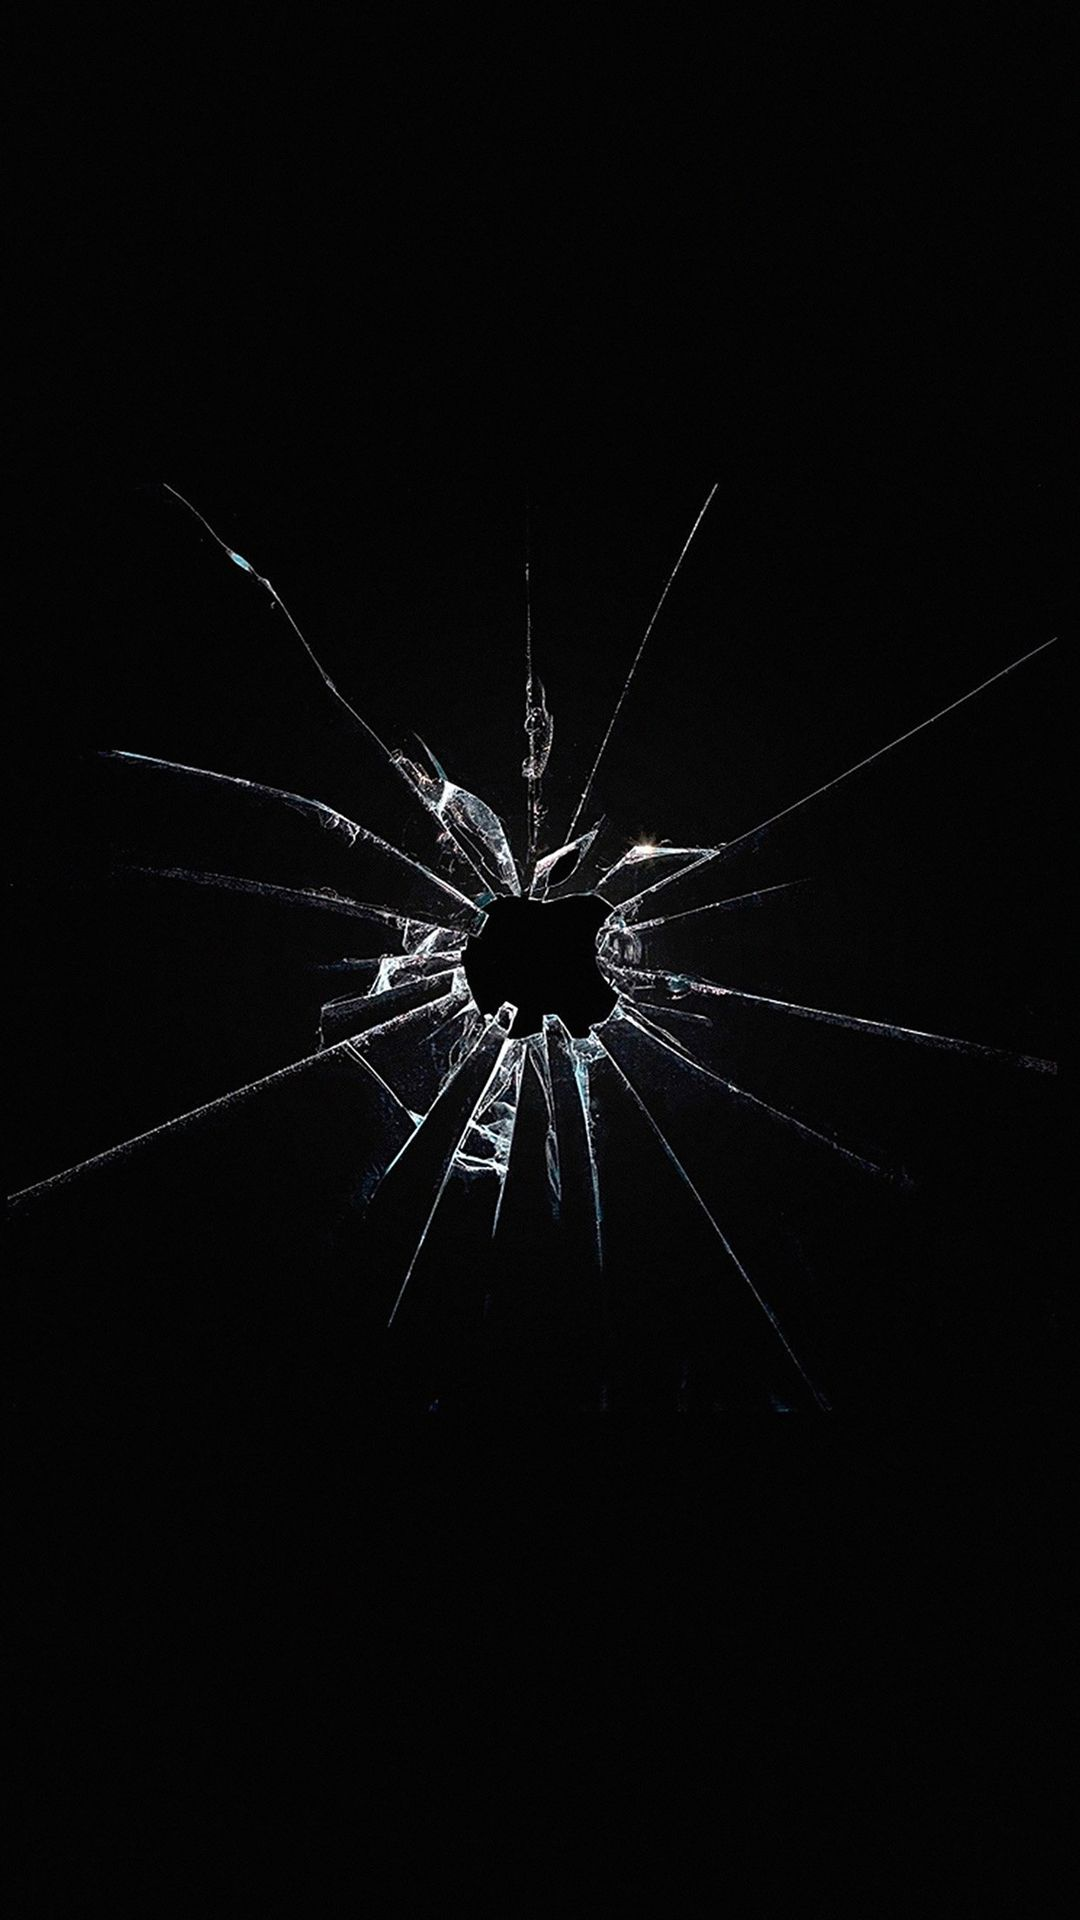 Apple Logo Window Dark Broken Iphone 6 Wallpaper Download Iphone Wallpapers Ipad Wallpapers One Broken Glass Wallpaper Dark Wallpaper Iphone Dark Wallpaper